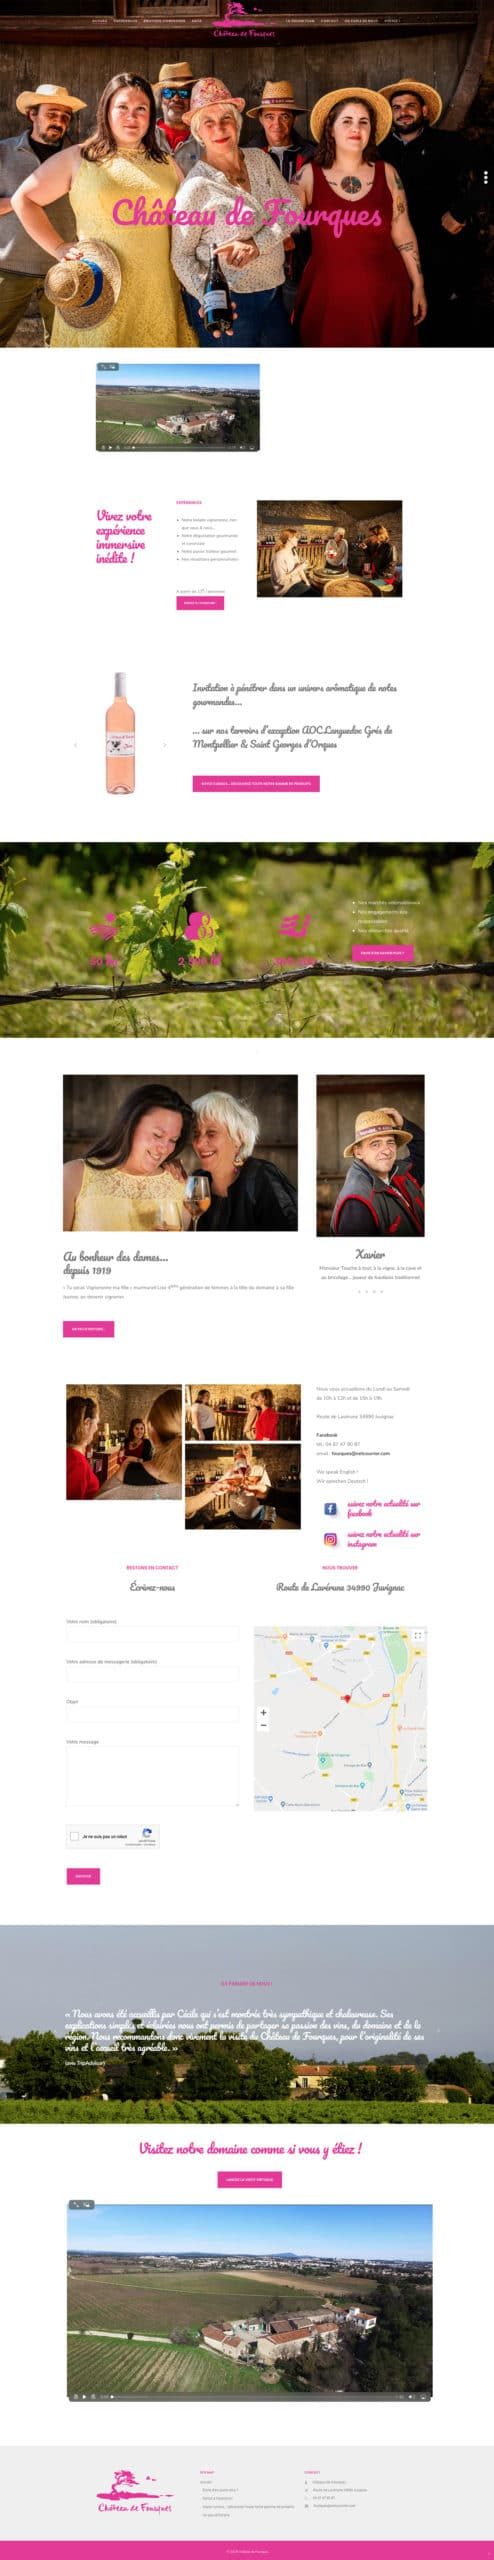 chateaudefourques_siteweb_00